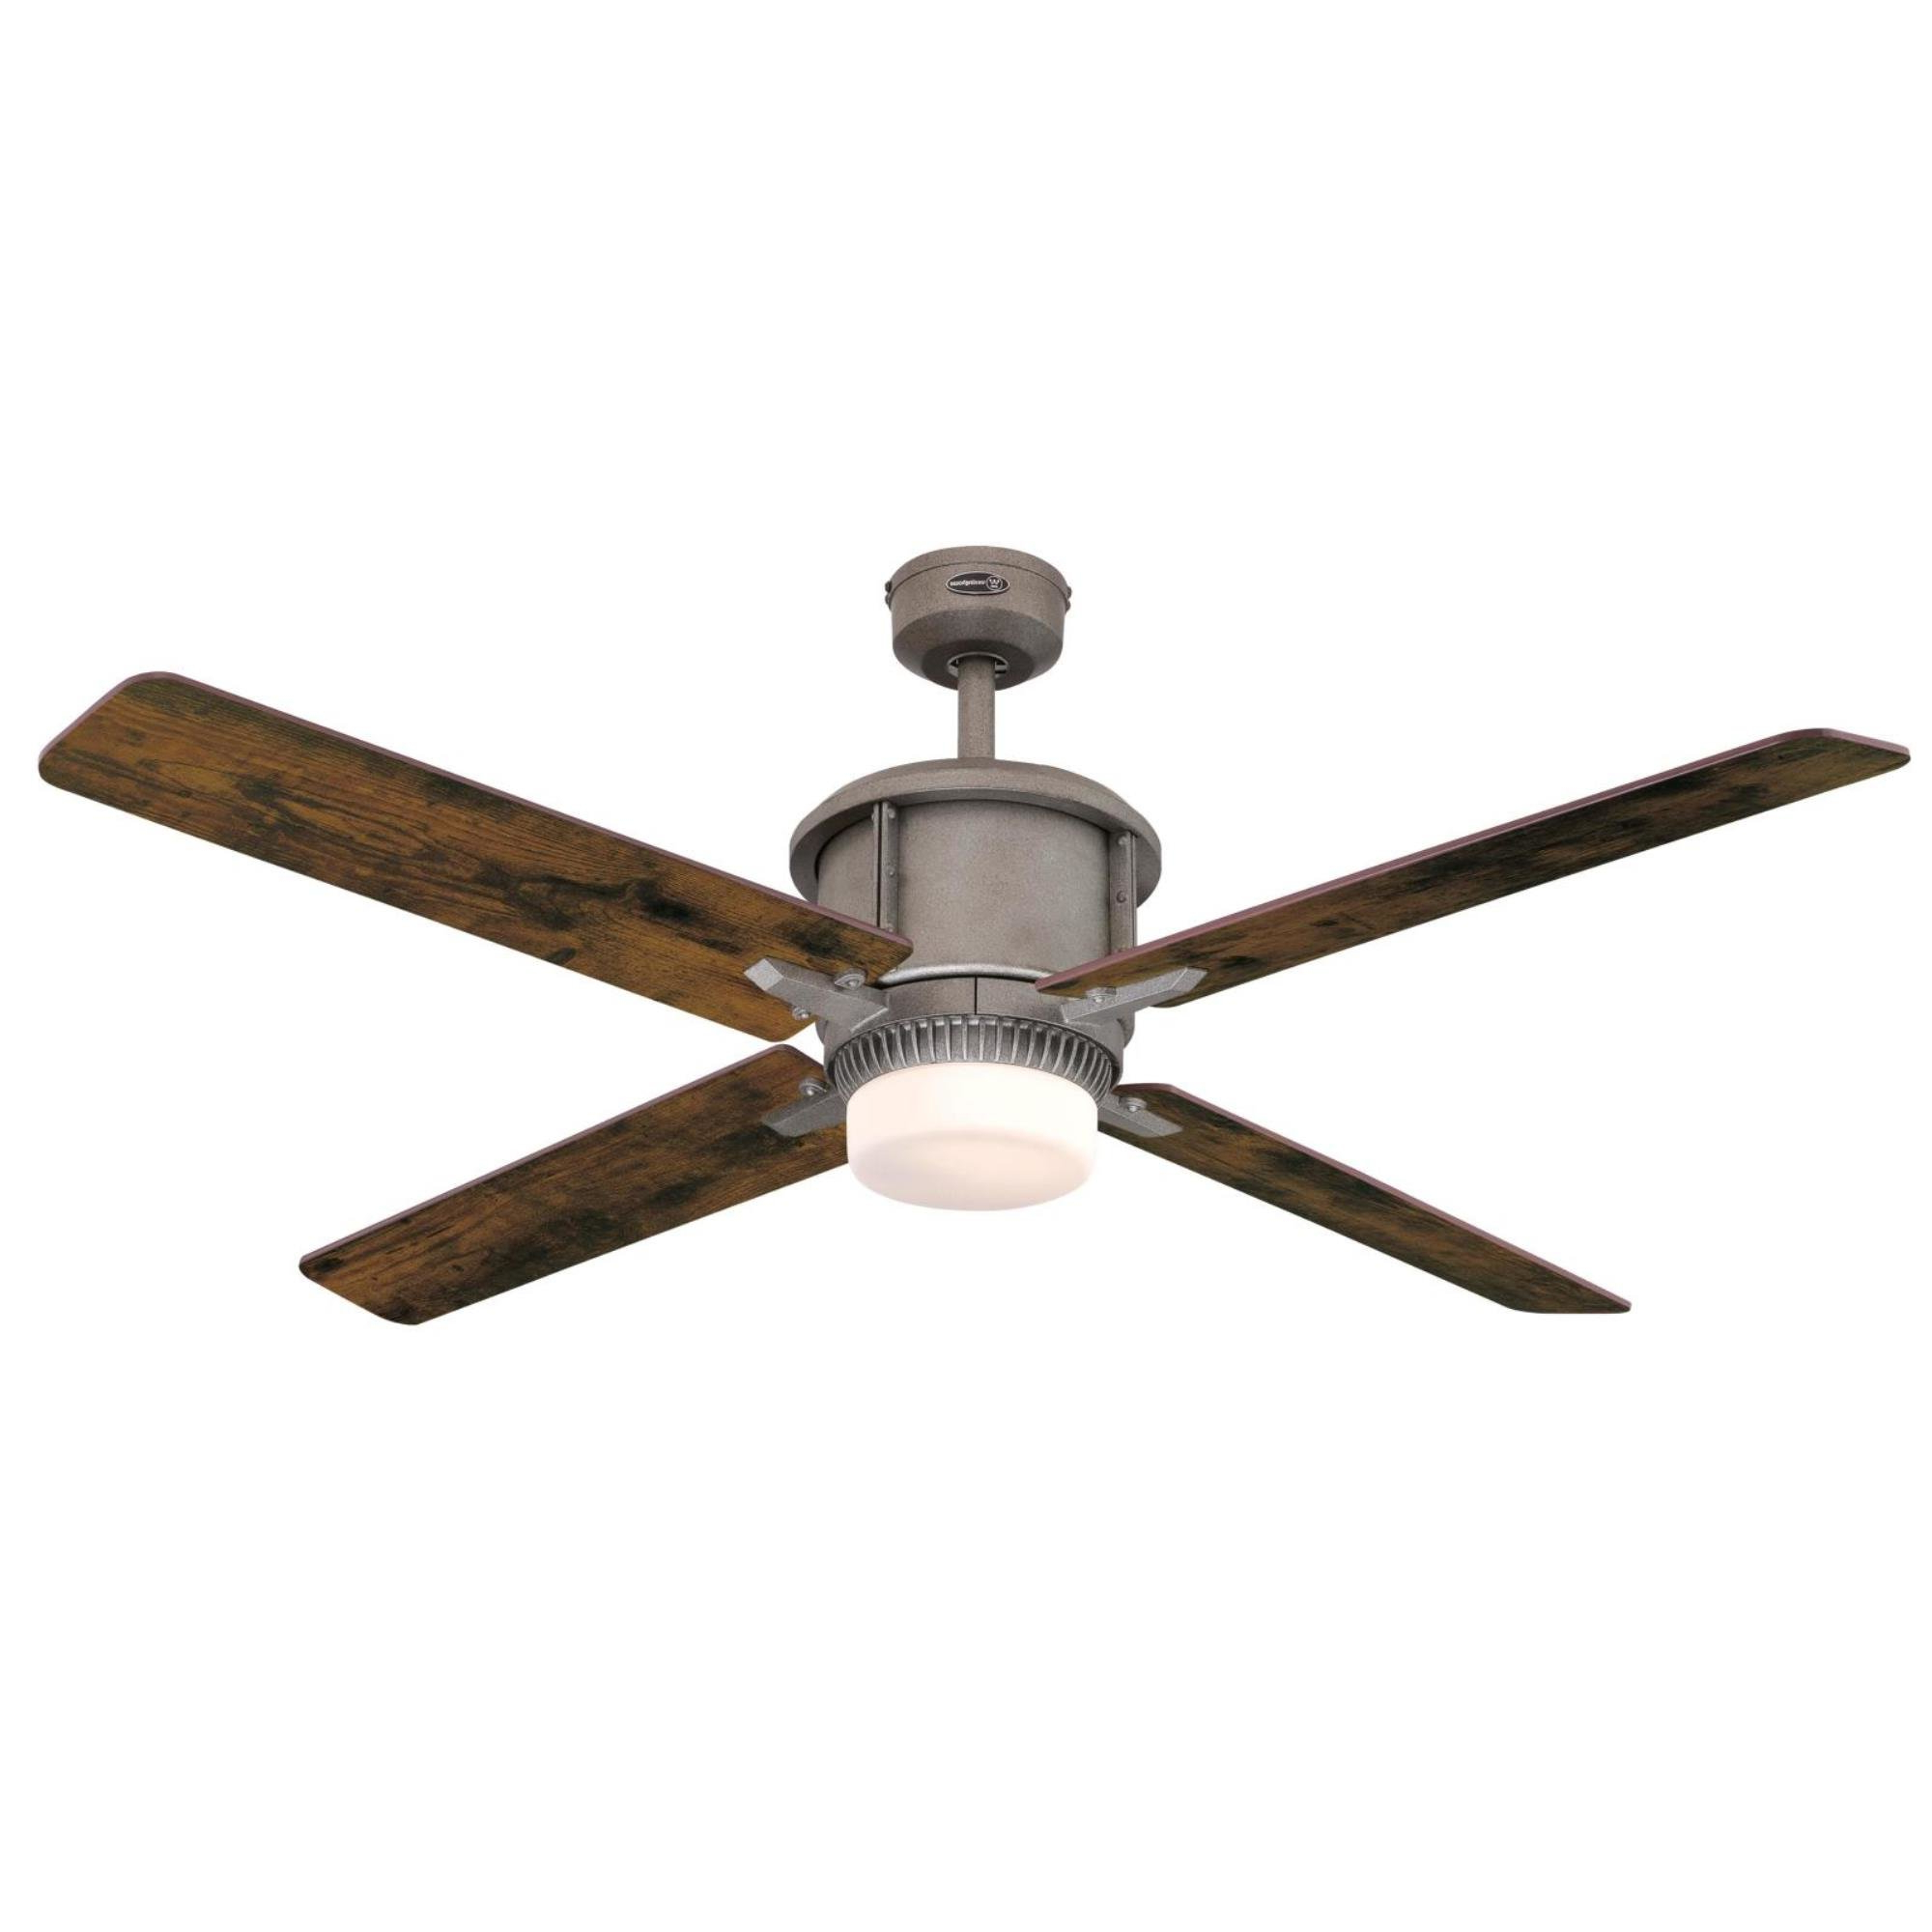 Preferred Industrial Style Light Kit Included Ceiling Fans You'll Love Throughout Calkins 5 Blade Ceiling Fans (View 13 of 20)